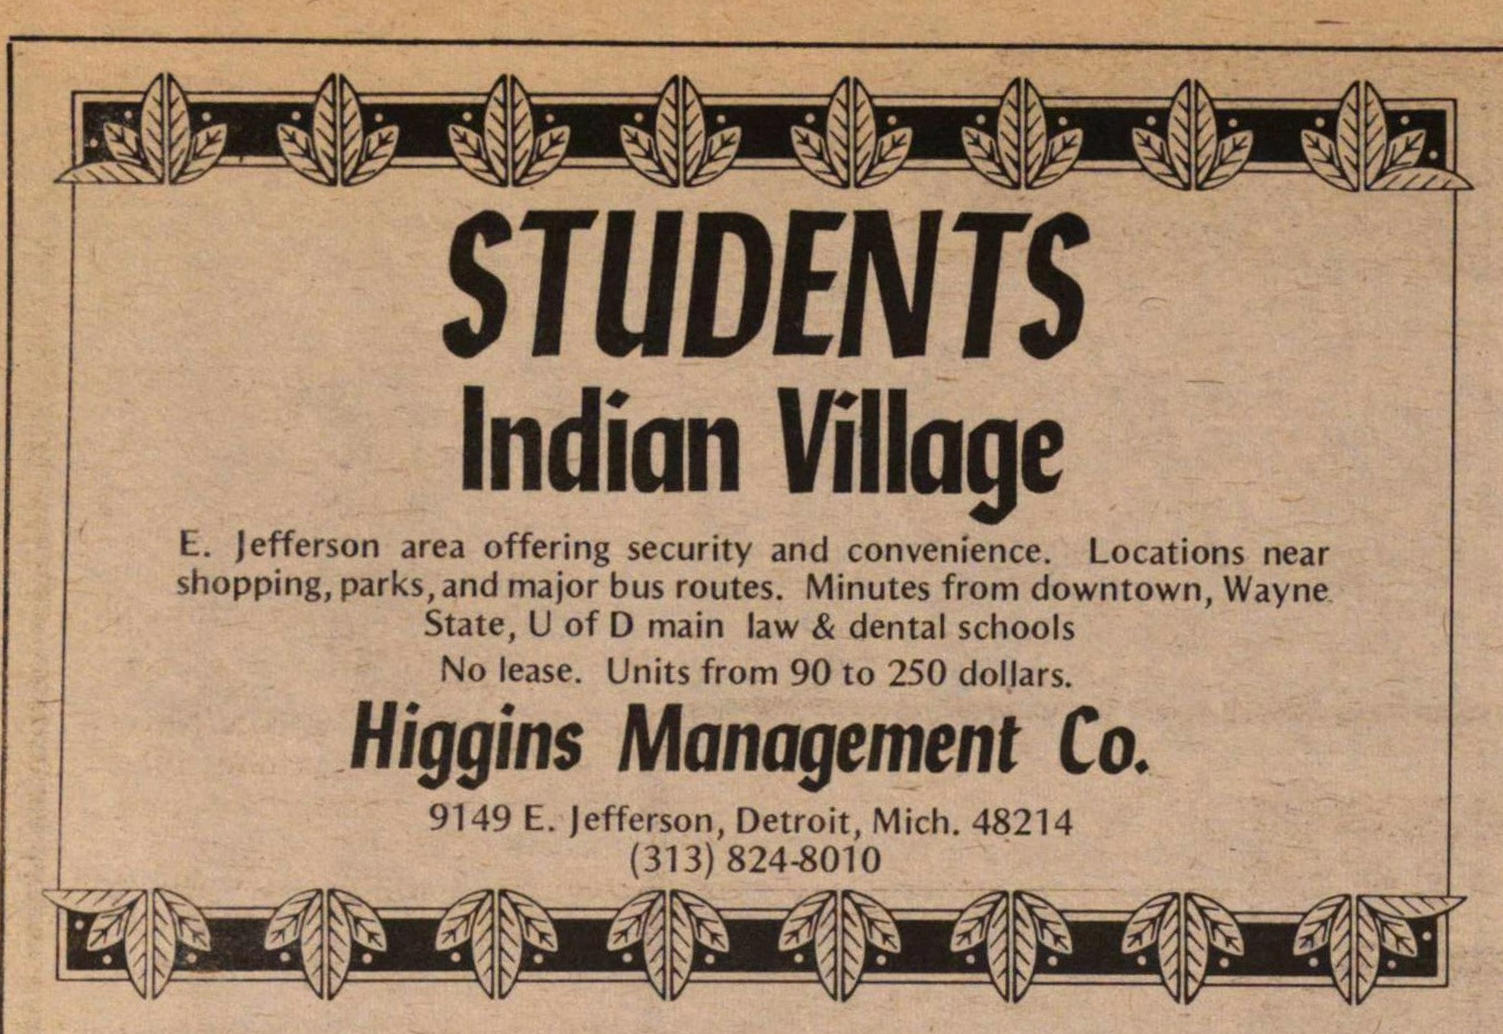 Higgins Management Co. image